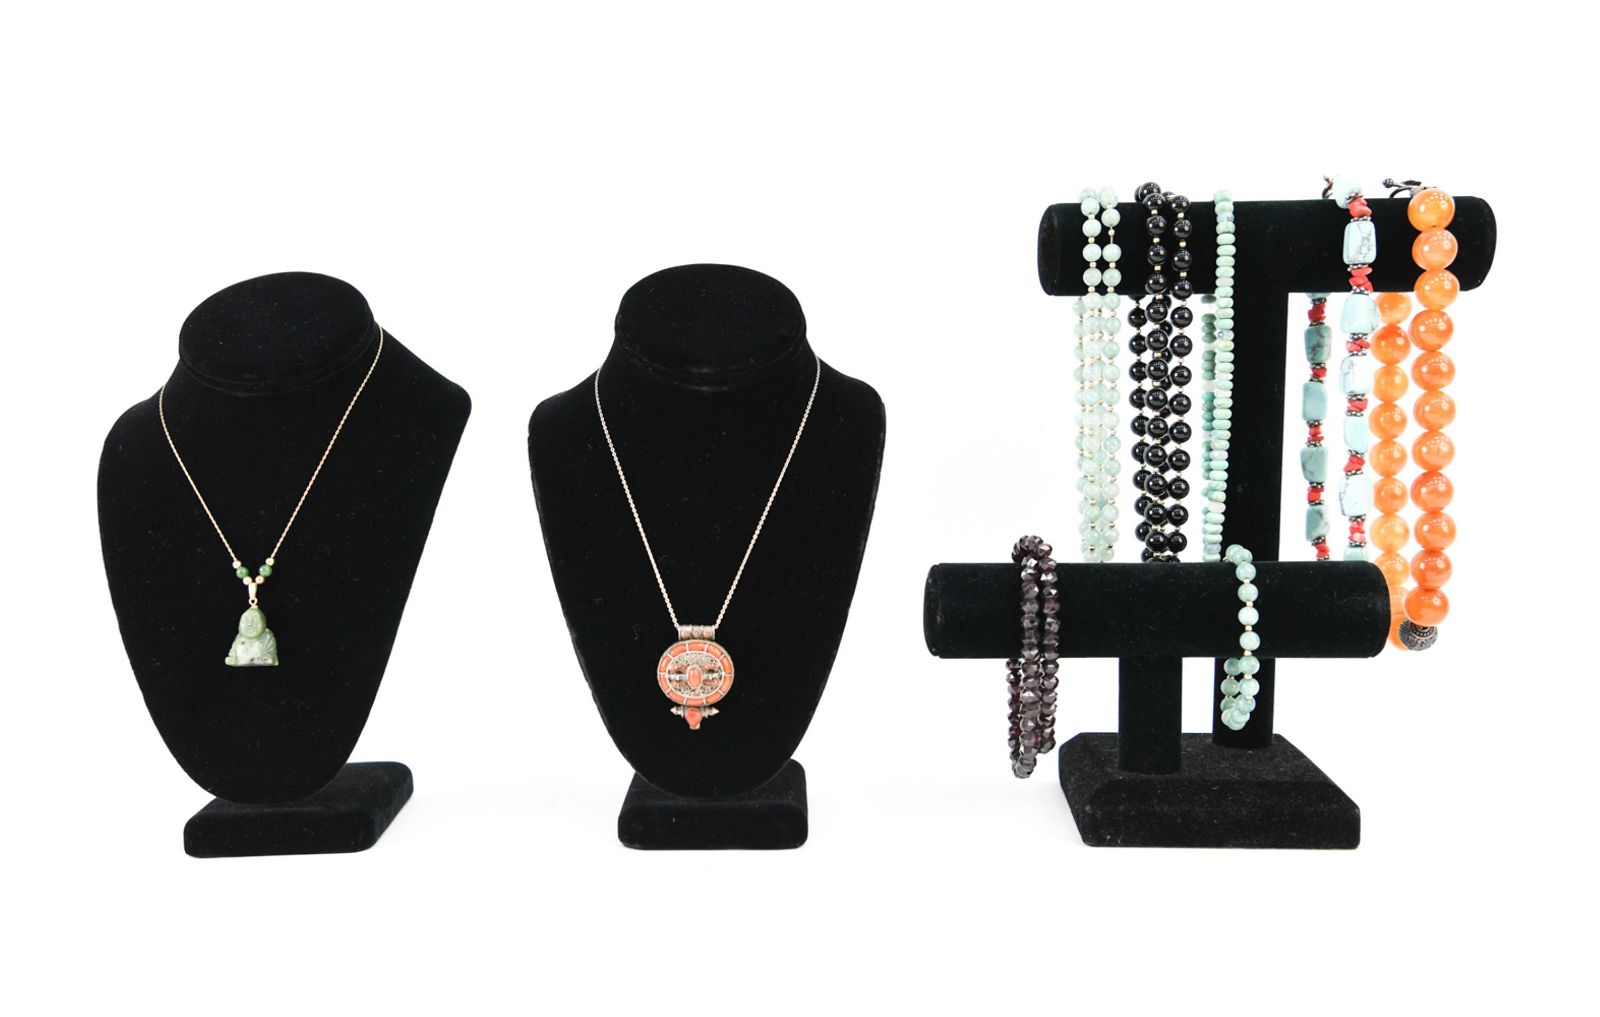 GROUPING OF JEWELRY INCL. 14K GOLD & SILVER